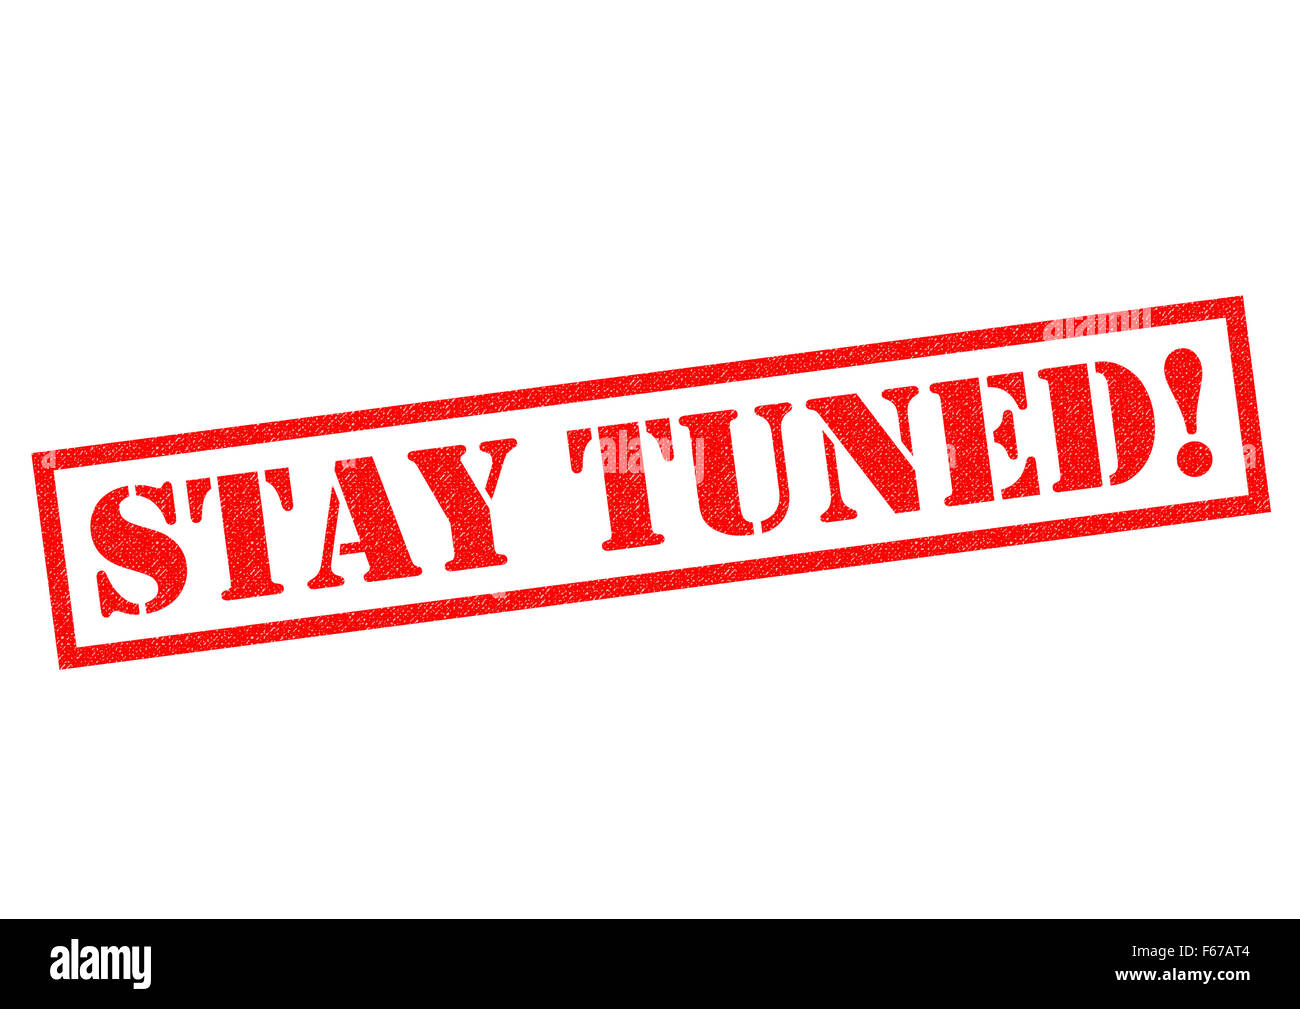 stay tuned stock photos & stay tuned stock images - alamy